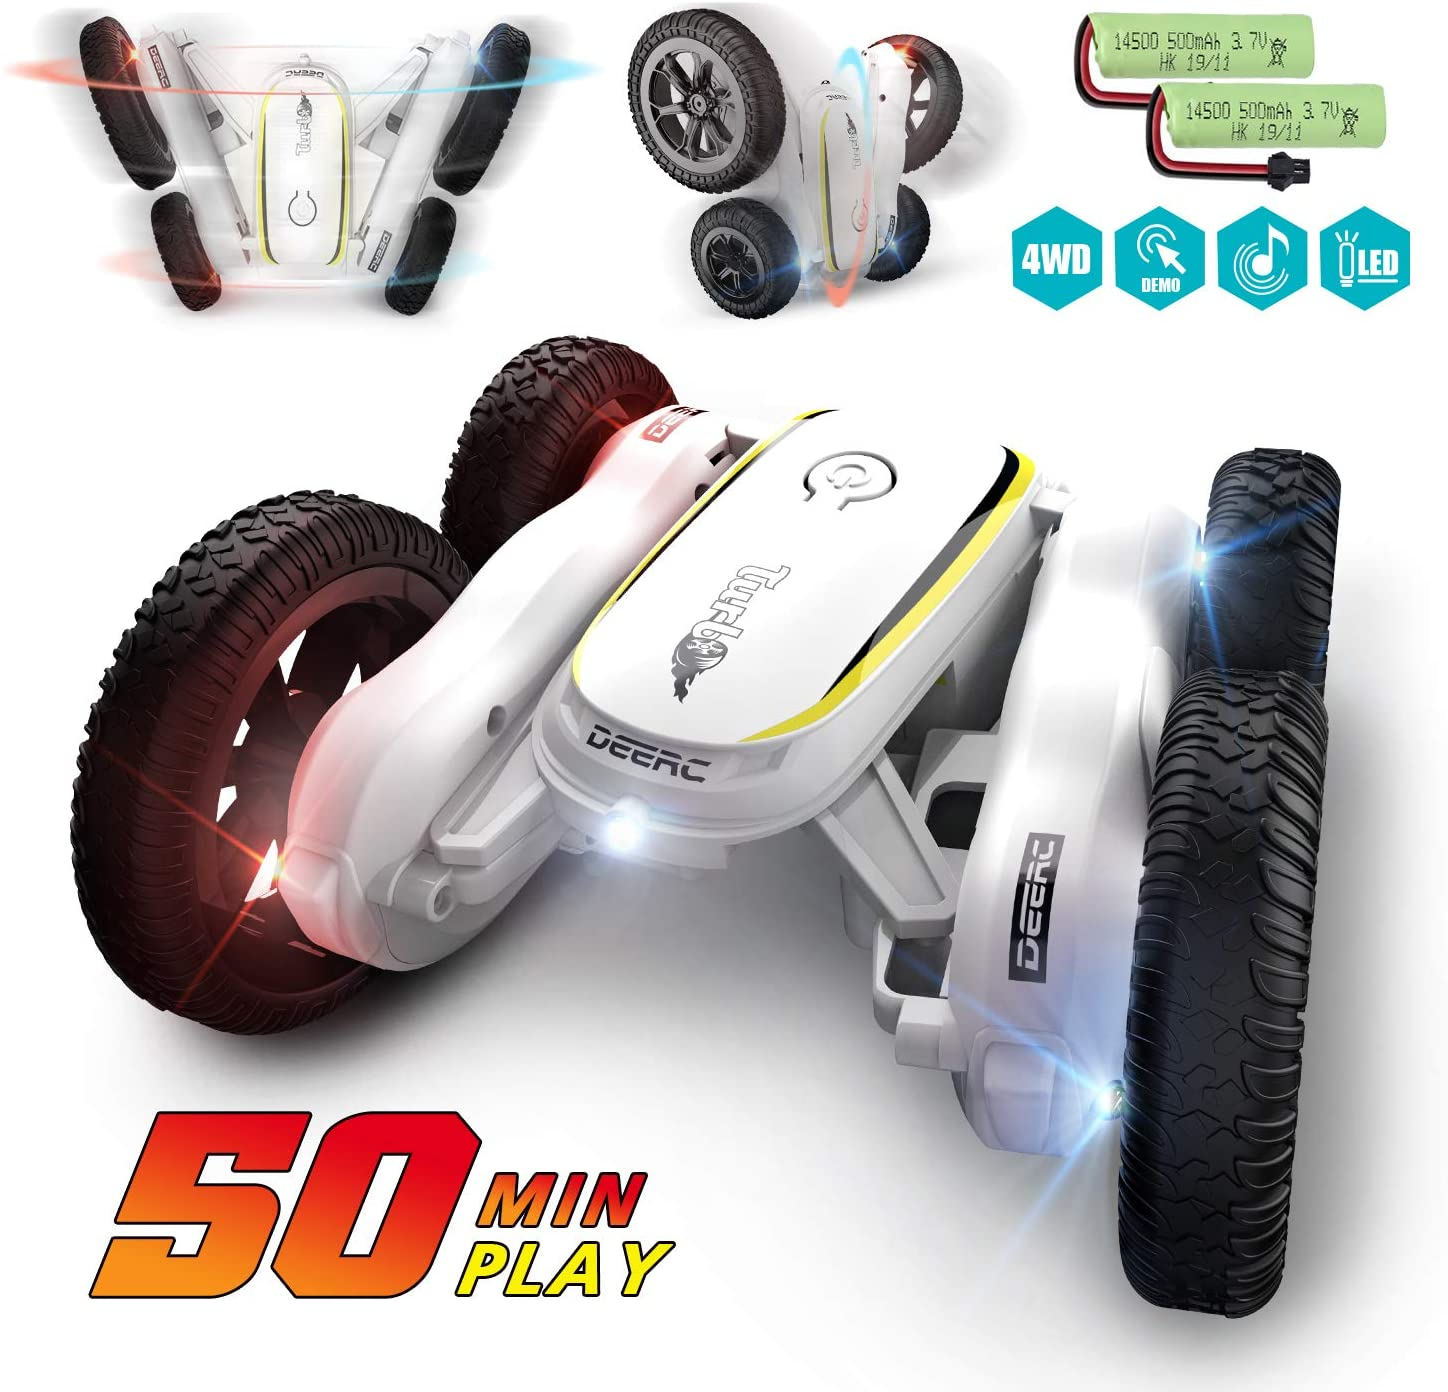 DEERC <font><b>1:10</b></font> <font><b>RC</b></font> Car 4WD <font><b>RC</b></font> <font><b>Drift</b></font> Remote Control Car Crawler 1/10 Stunt Racing Vehicles With 2 Batteries For 50 Mins Playing Time image